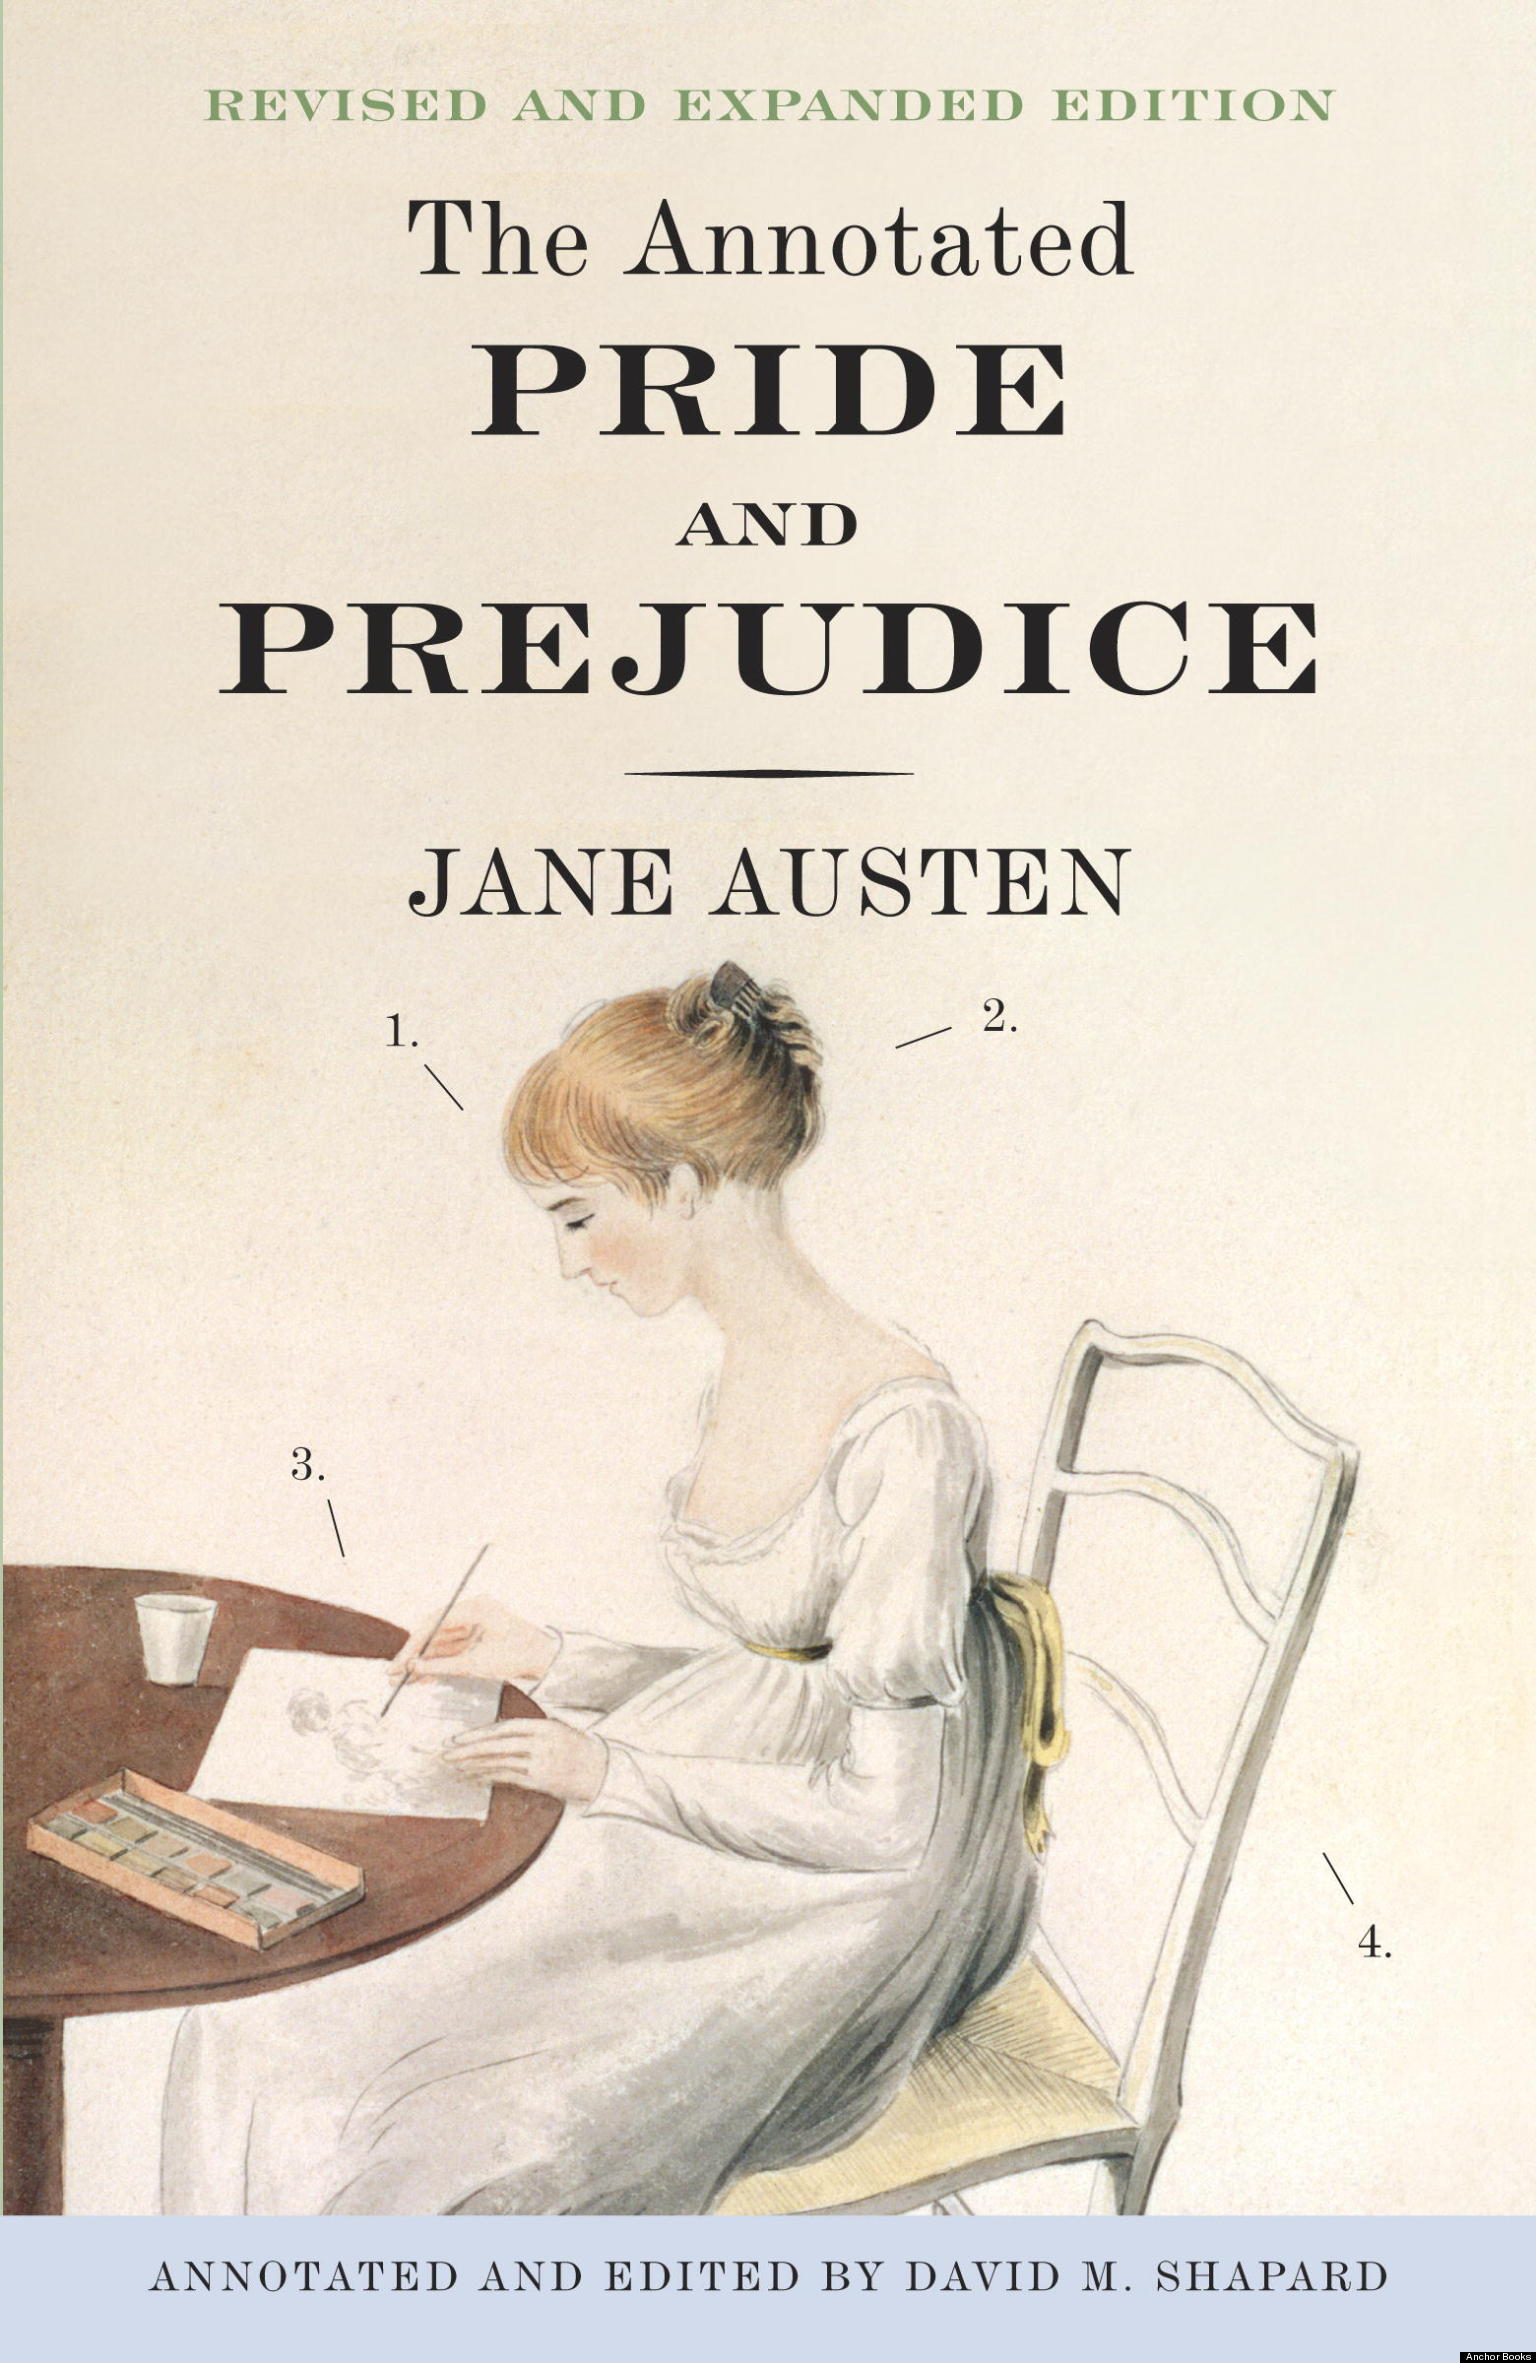 pride and prejudice book analysis Pride and prejudice is an 1813 romantic novel by jane austen it charts the  emotional  the american scholar claudia johnson defended the novel from  the criticism that it has an unrealistic fairy-tale quality one critic, mary poovey,  wrote the.